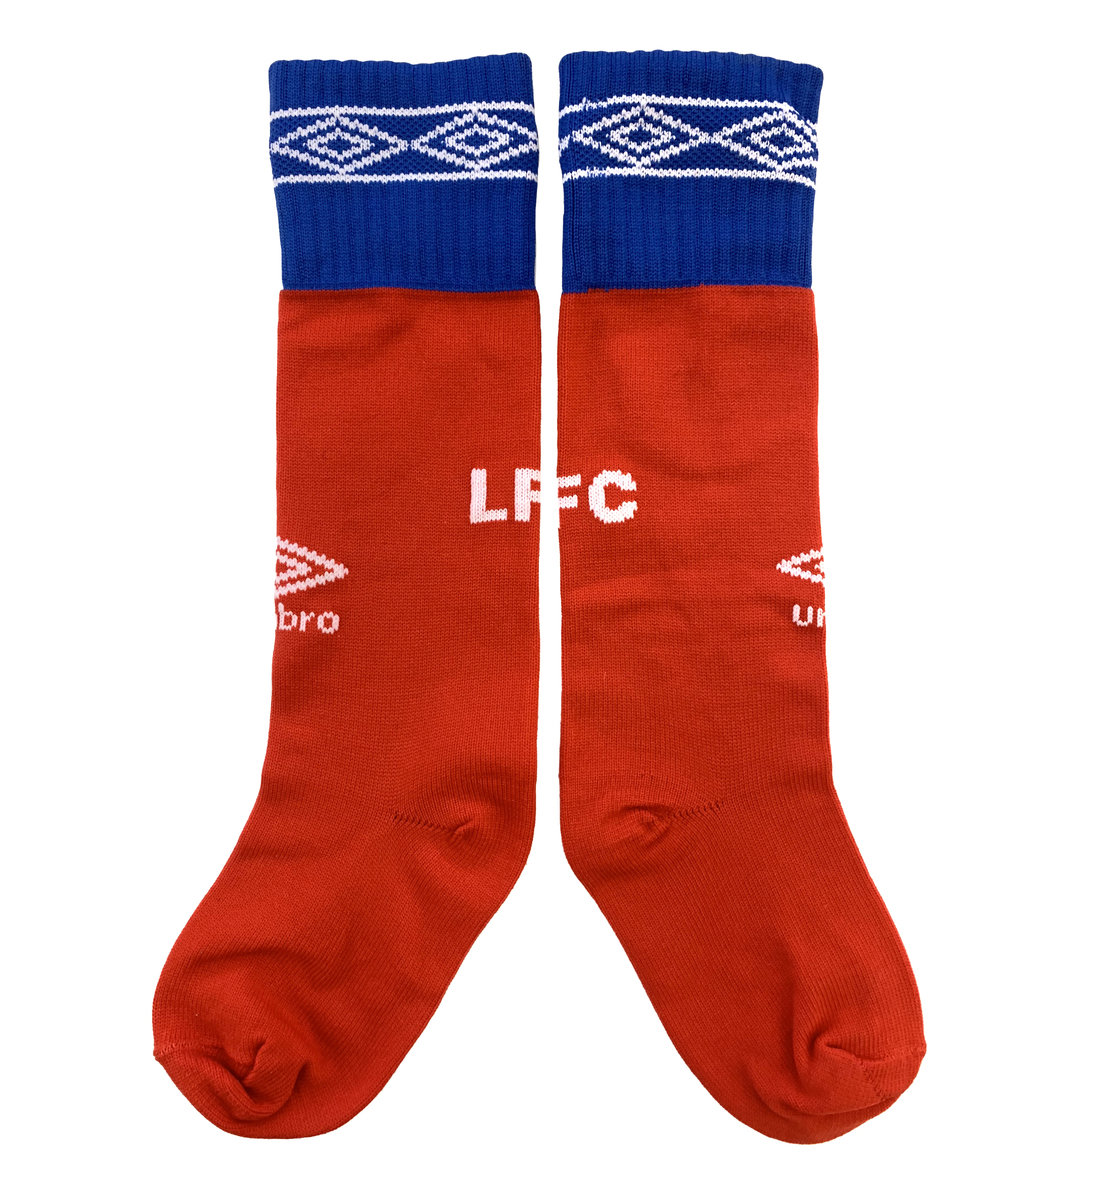 LINFIELD FC 19/20 HOME BABY/INFANT SOCKS